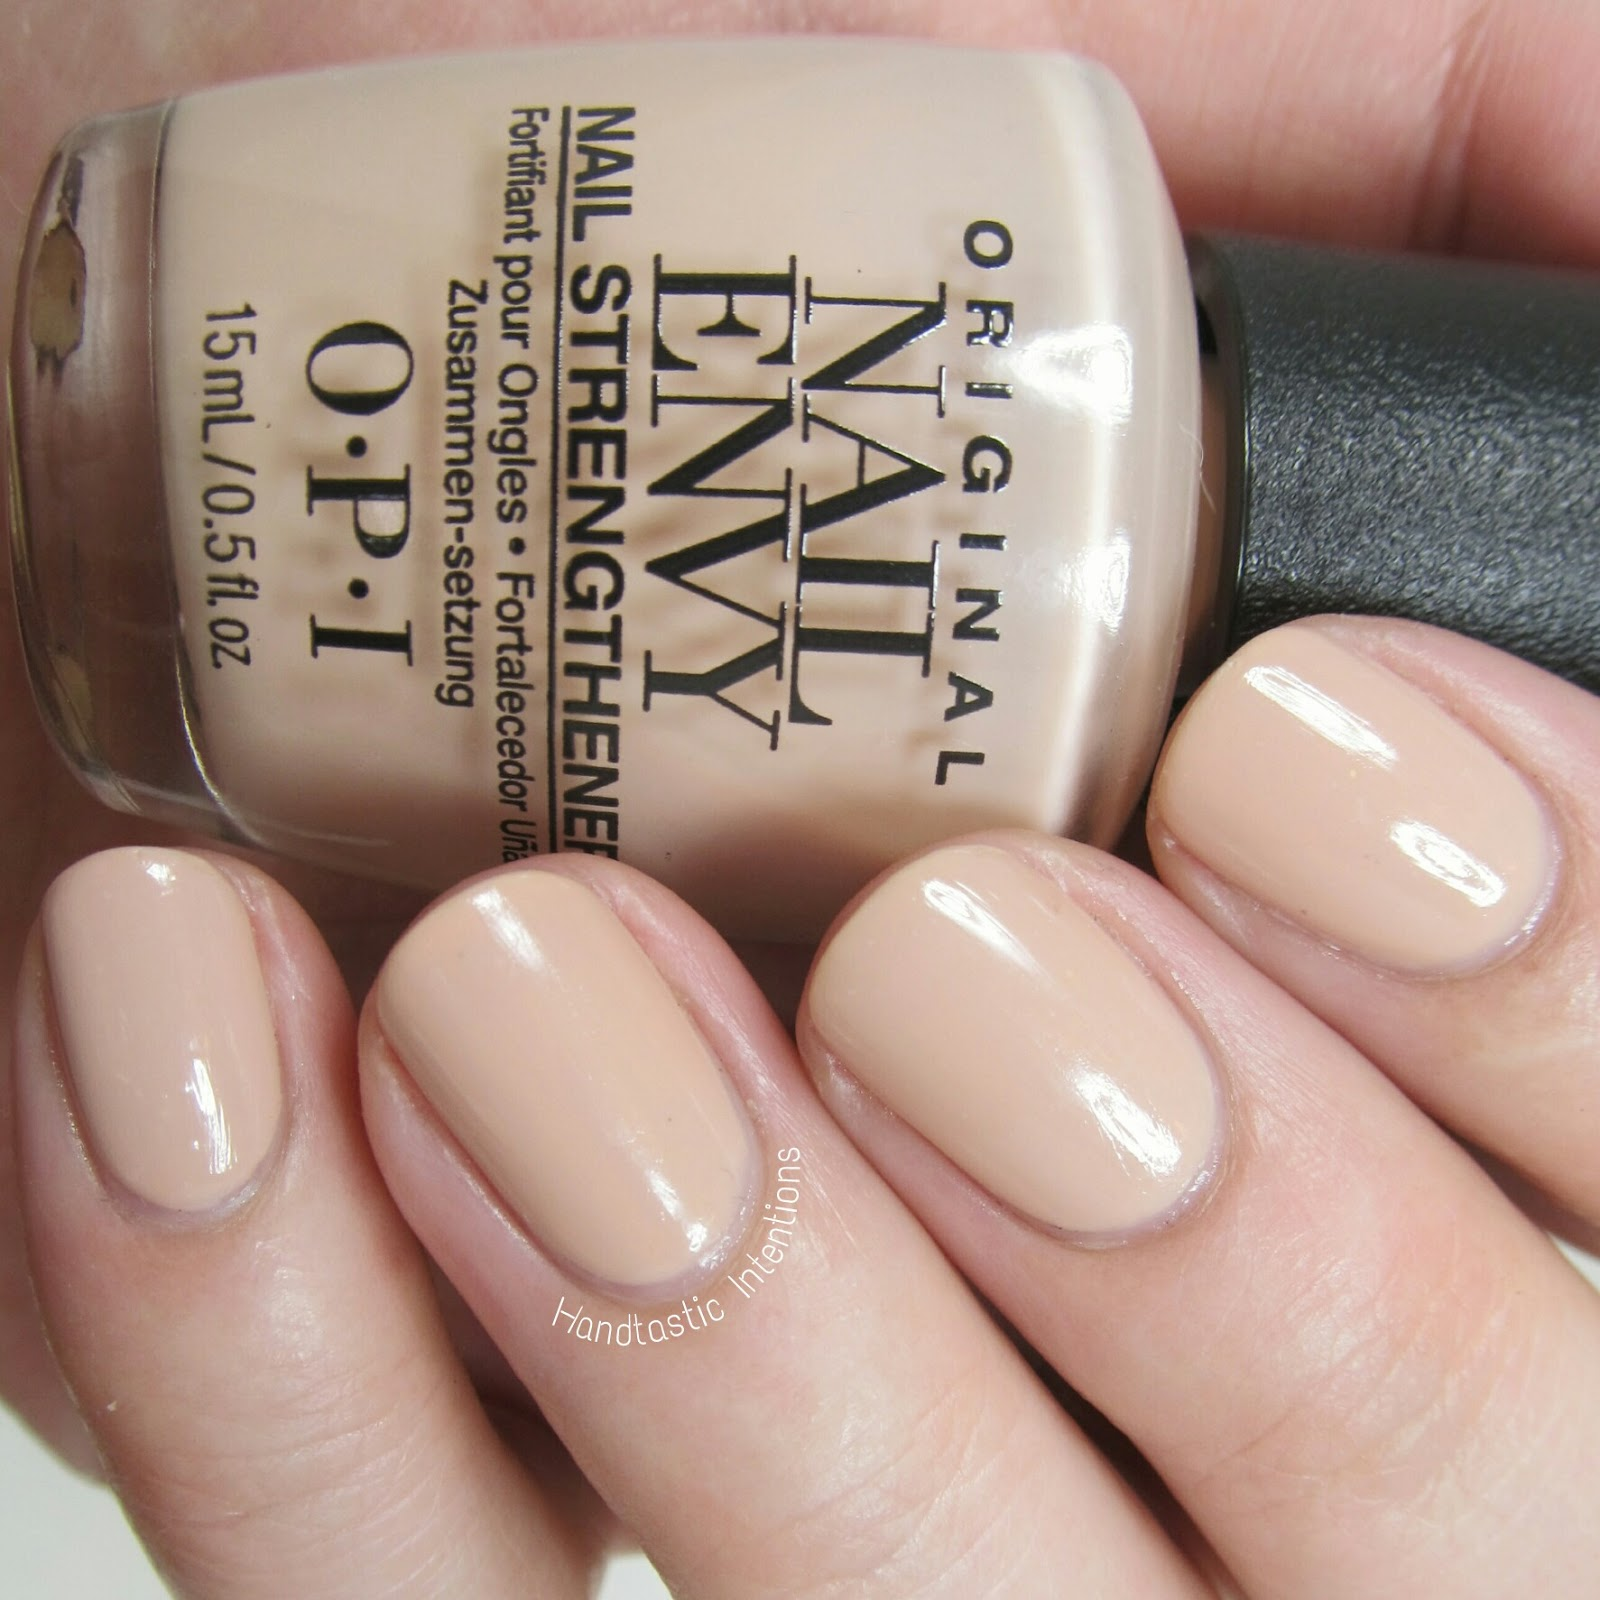 Handtastic Intentions: OPI Nail Envy Treatment in Samoan Sand